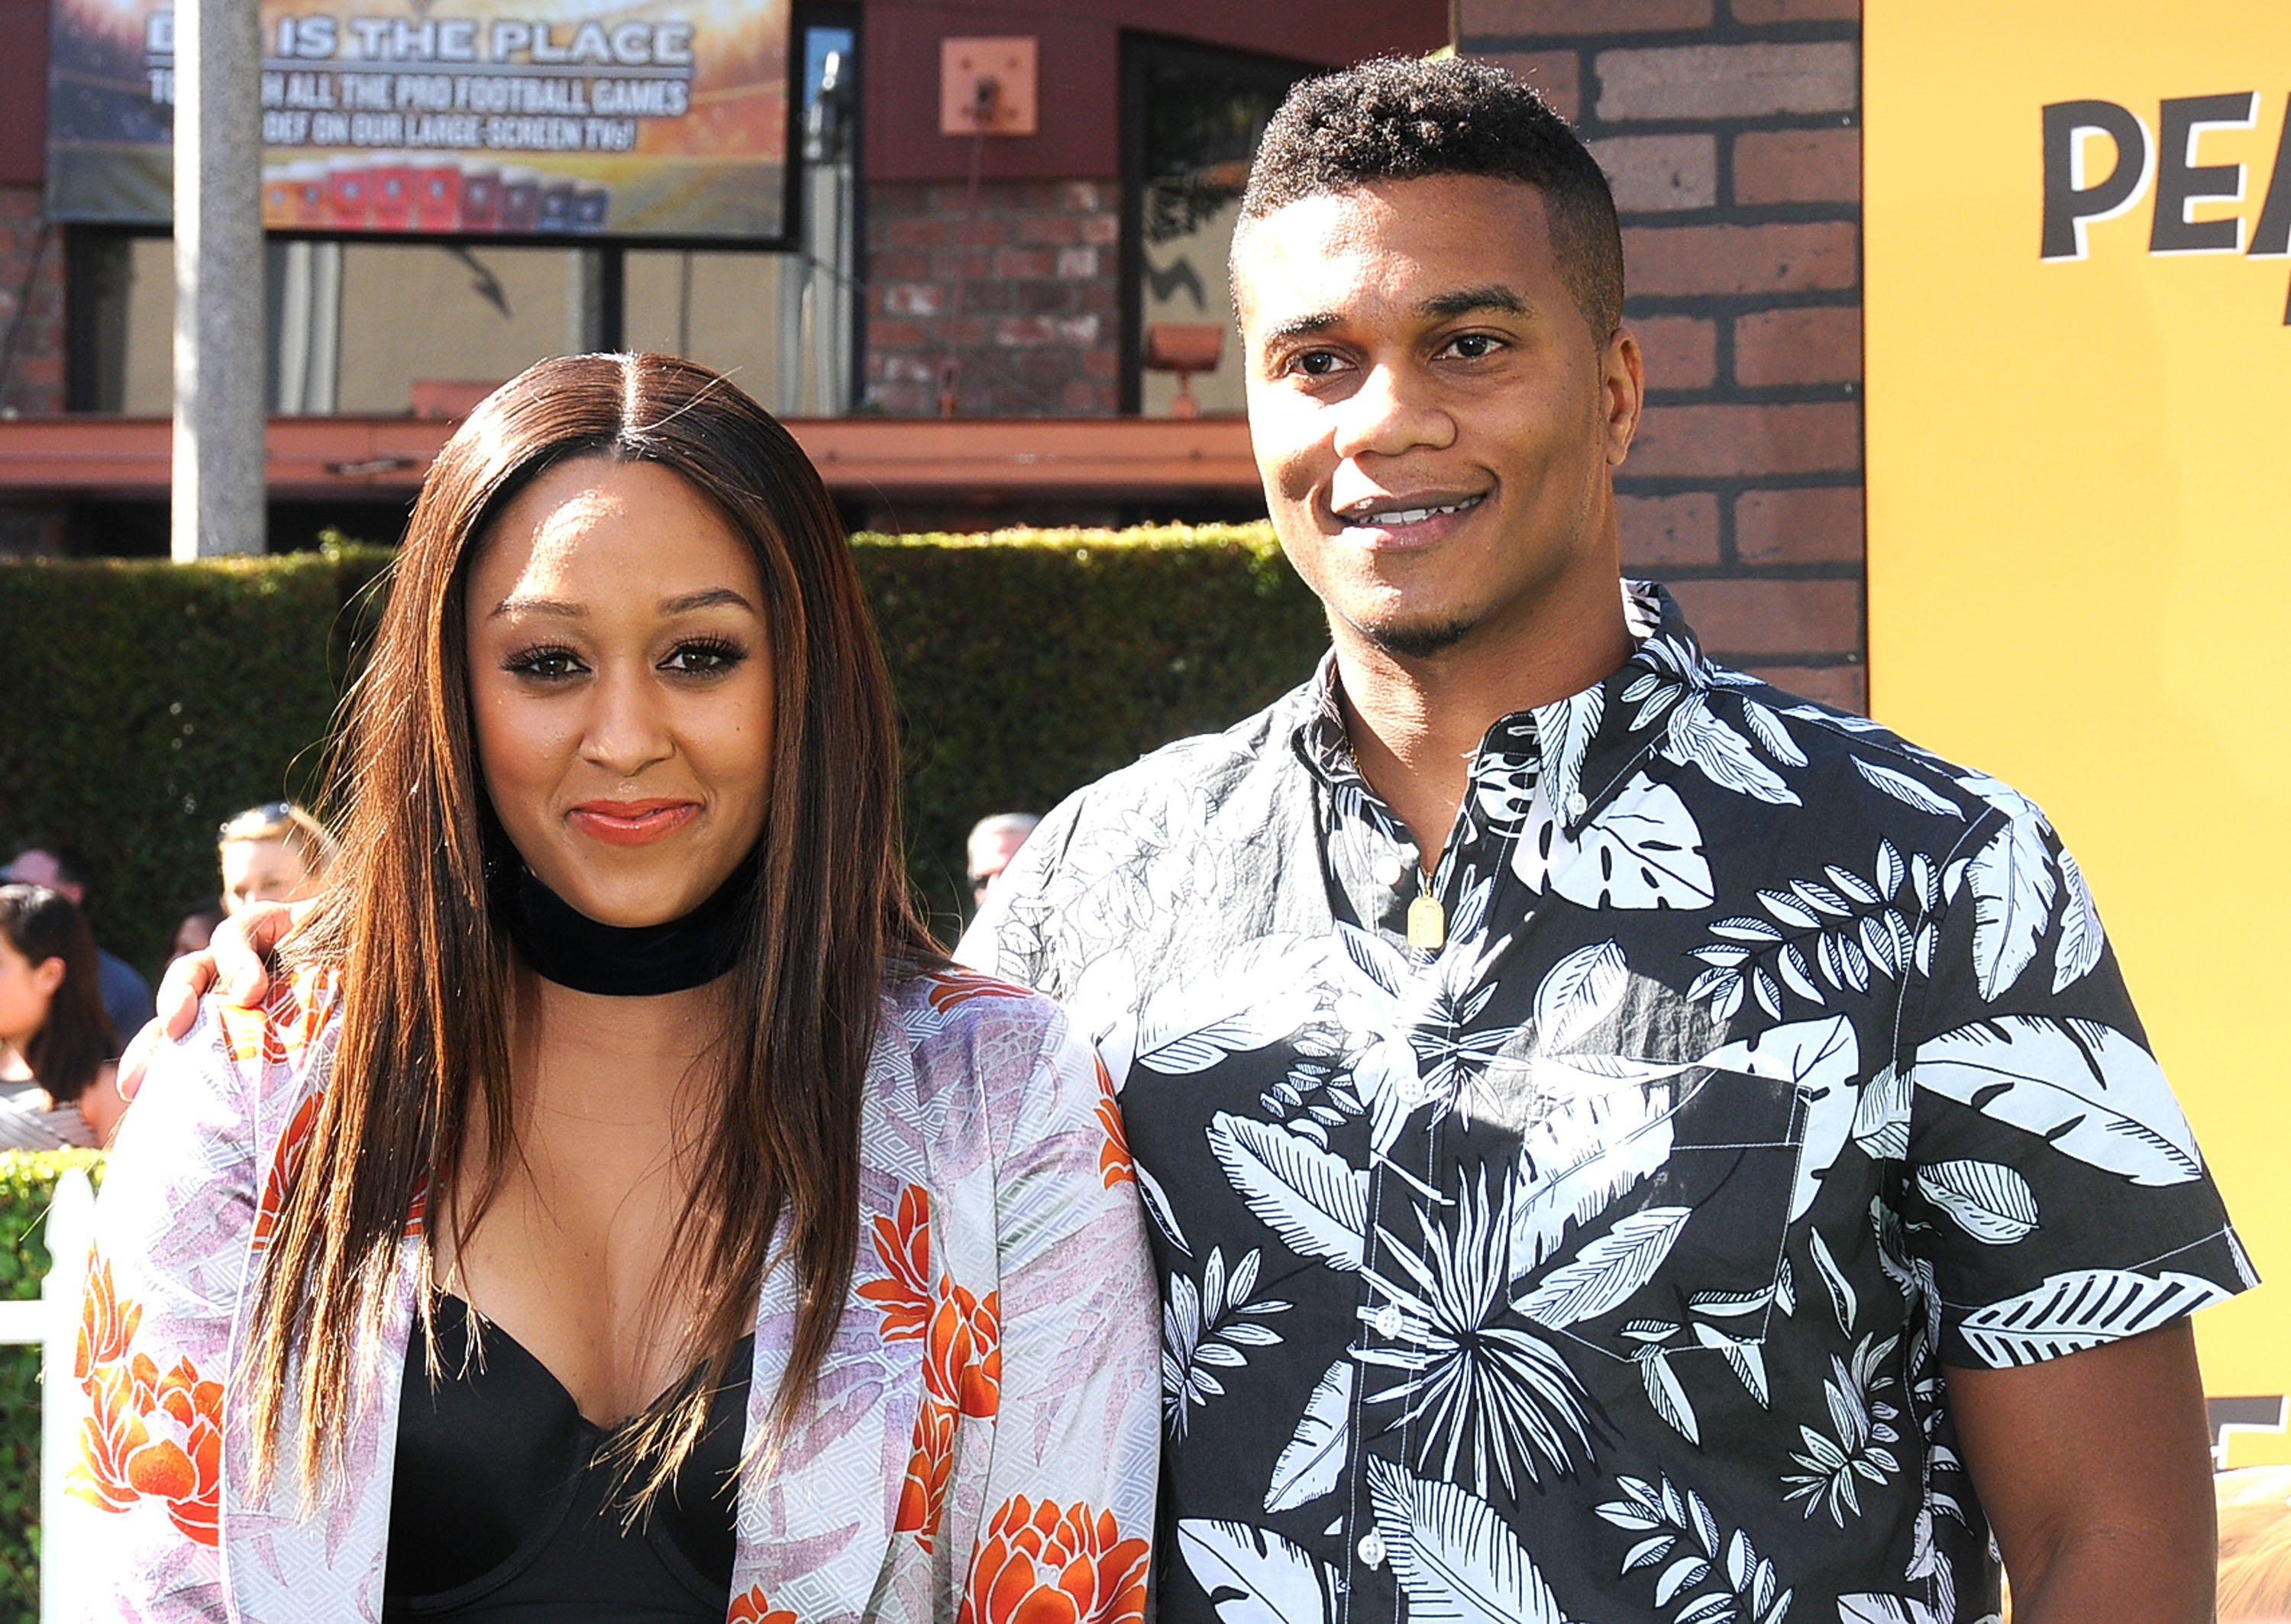 Tia Mowry and Cory Hardrict at the Premiere of 'The Peanuts Movie' at the Regency Village Theatre on November 1, 2015 in Westwood, California   Source: Getty Images